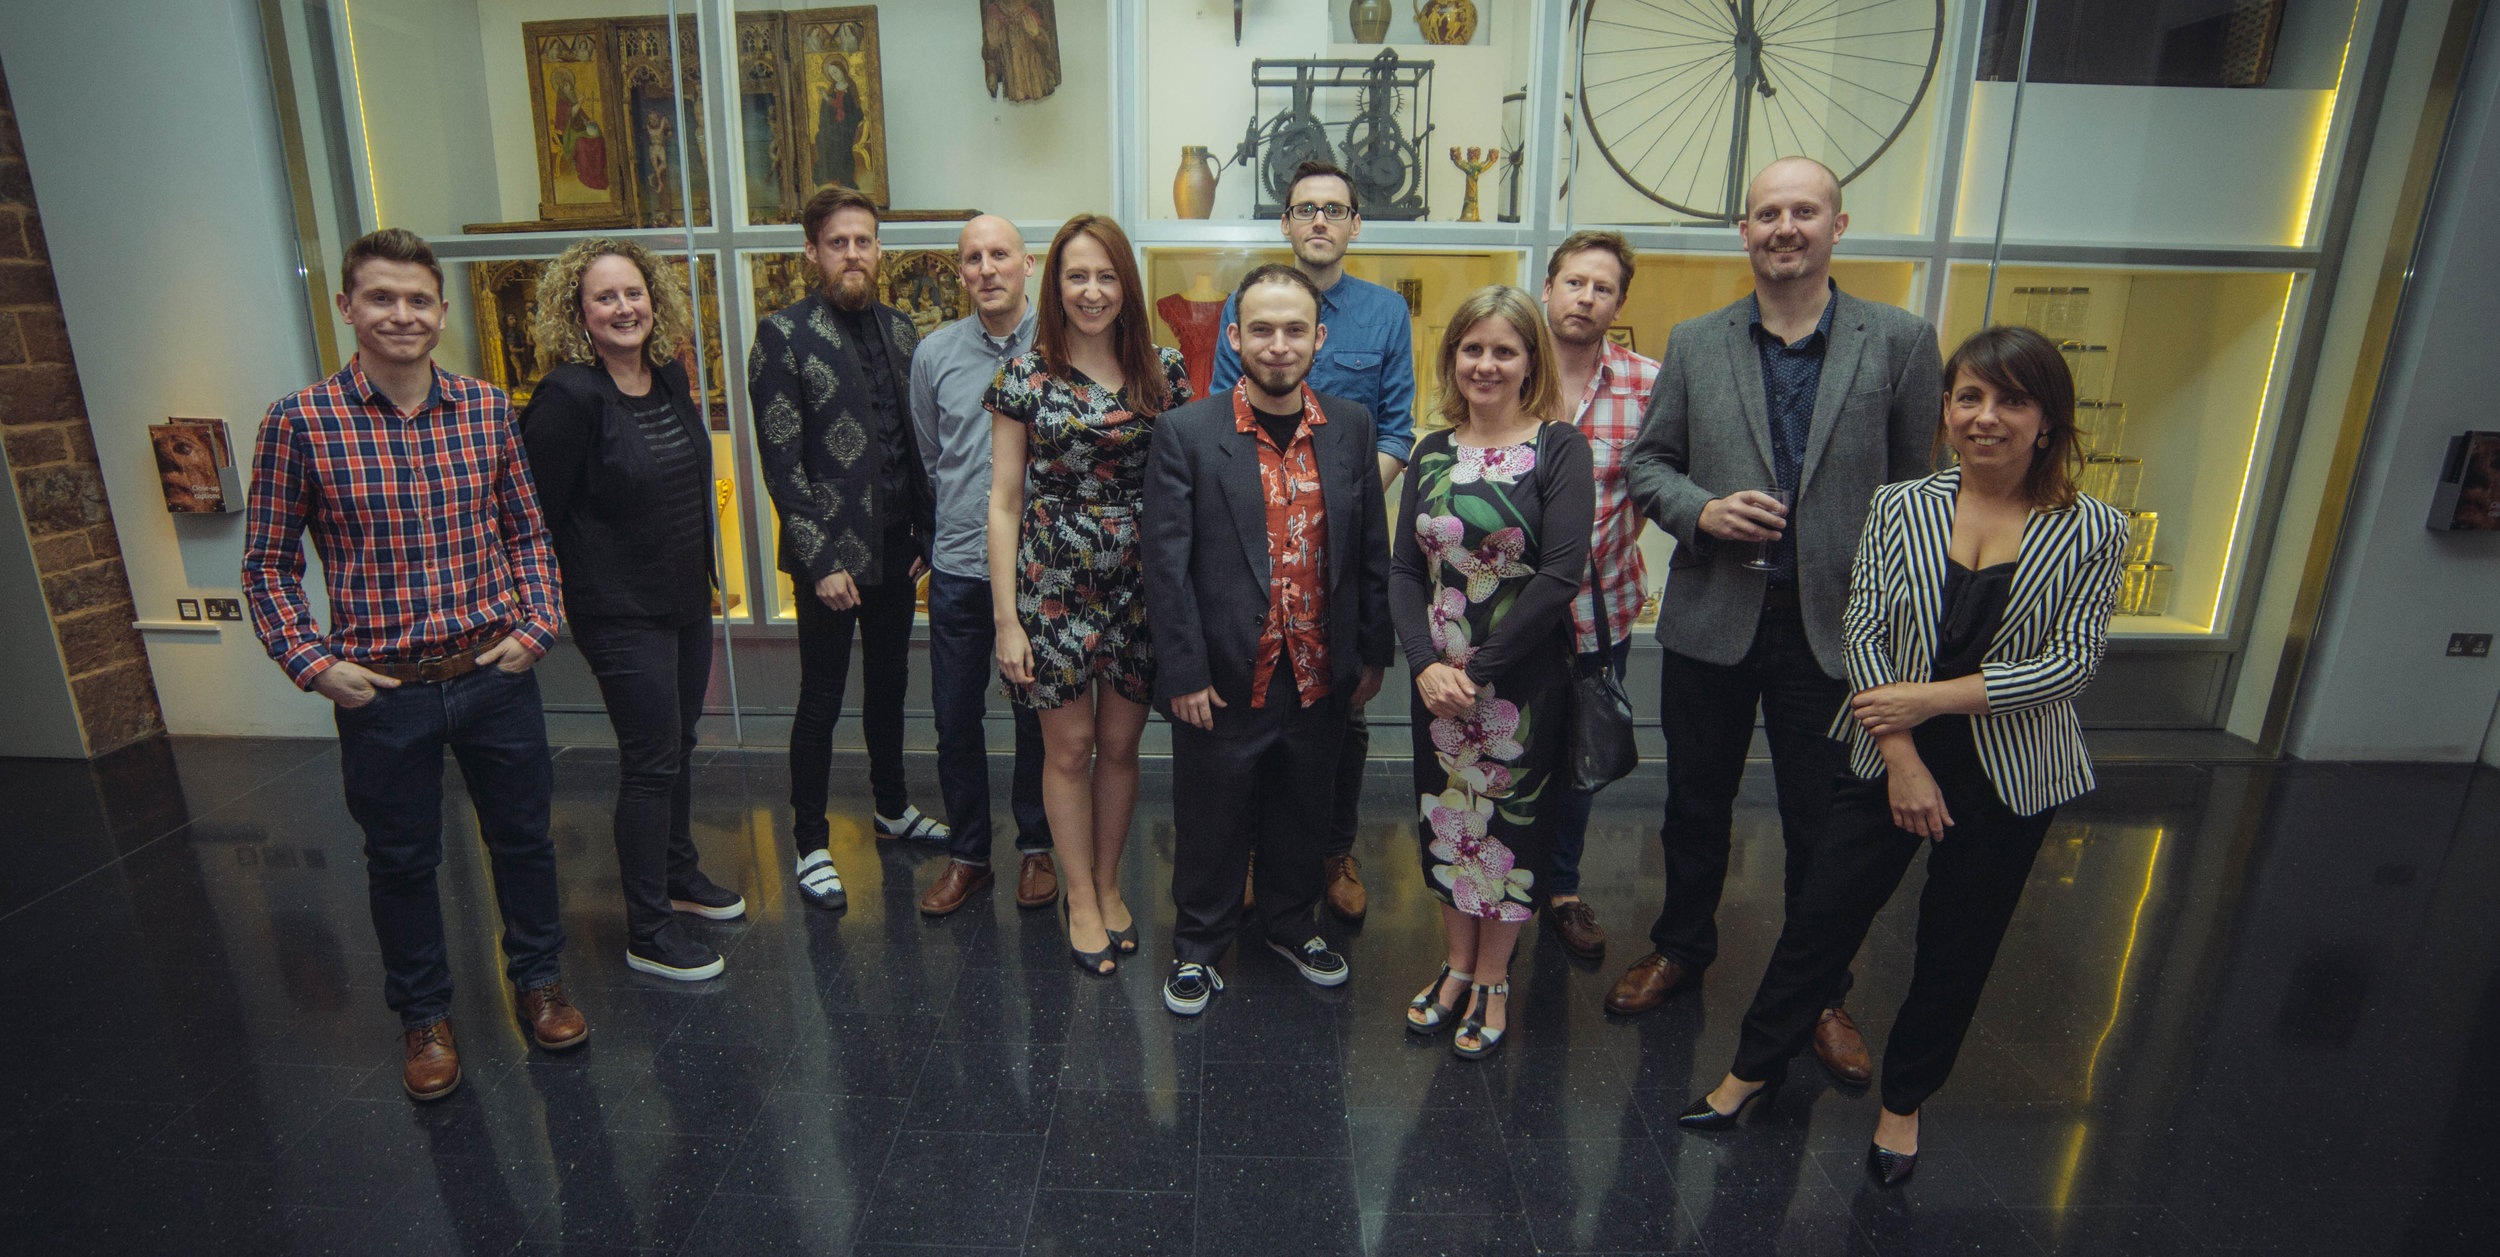 Group shot of Exeter Illustrator members at the Private View. Photo by Simon Hammett.